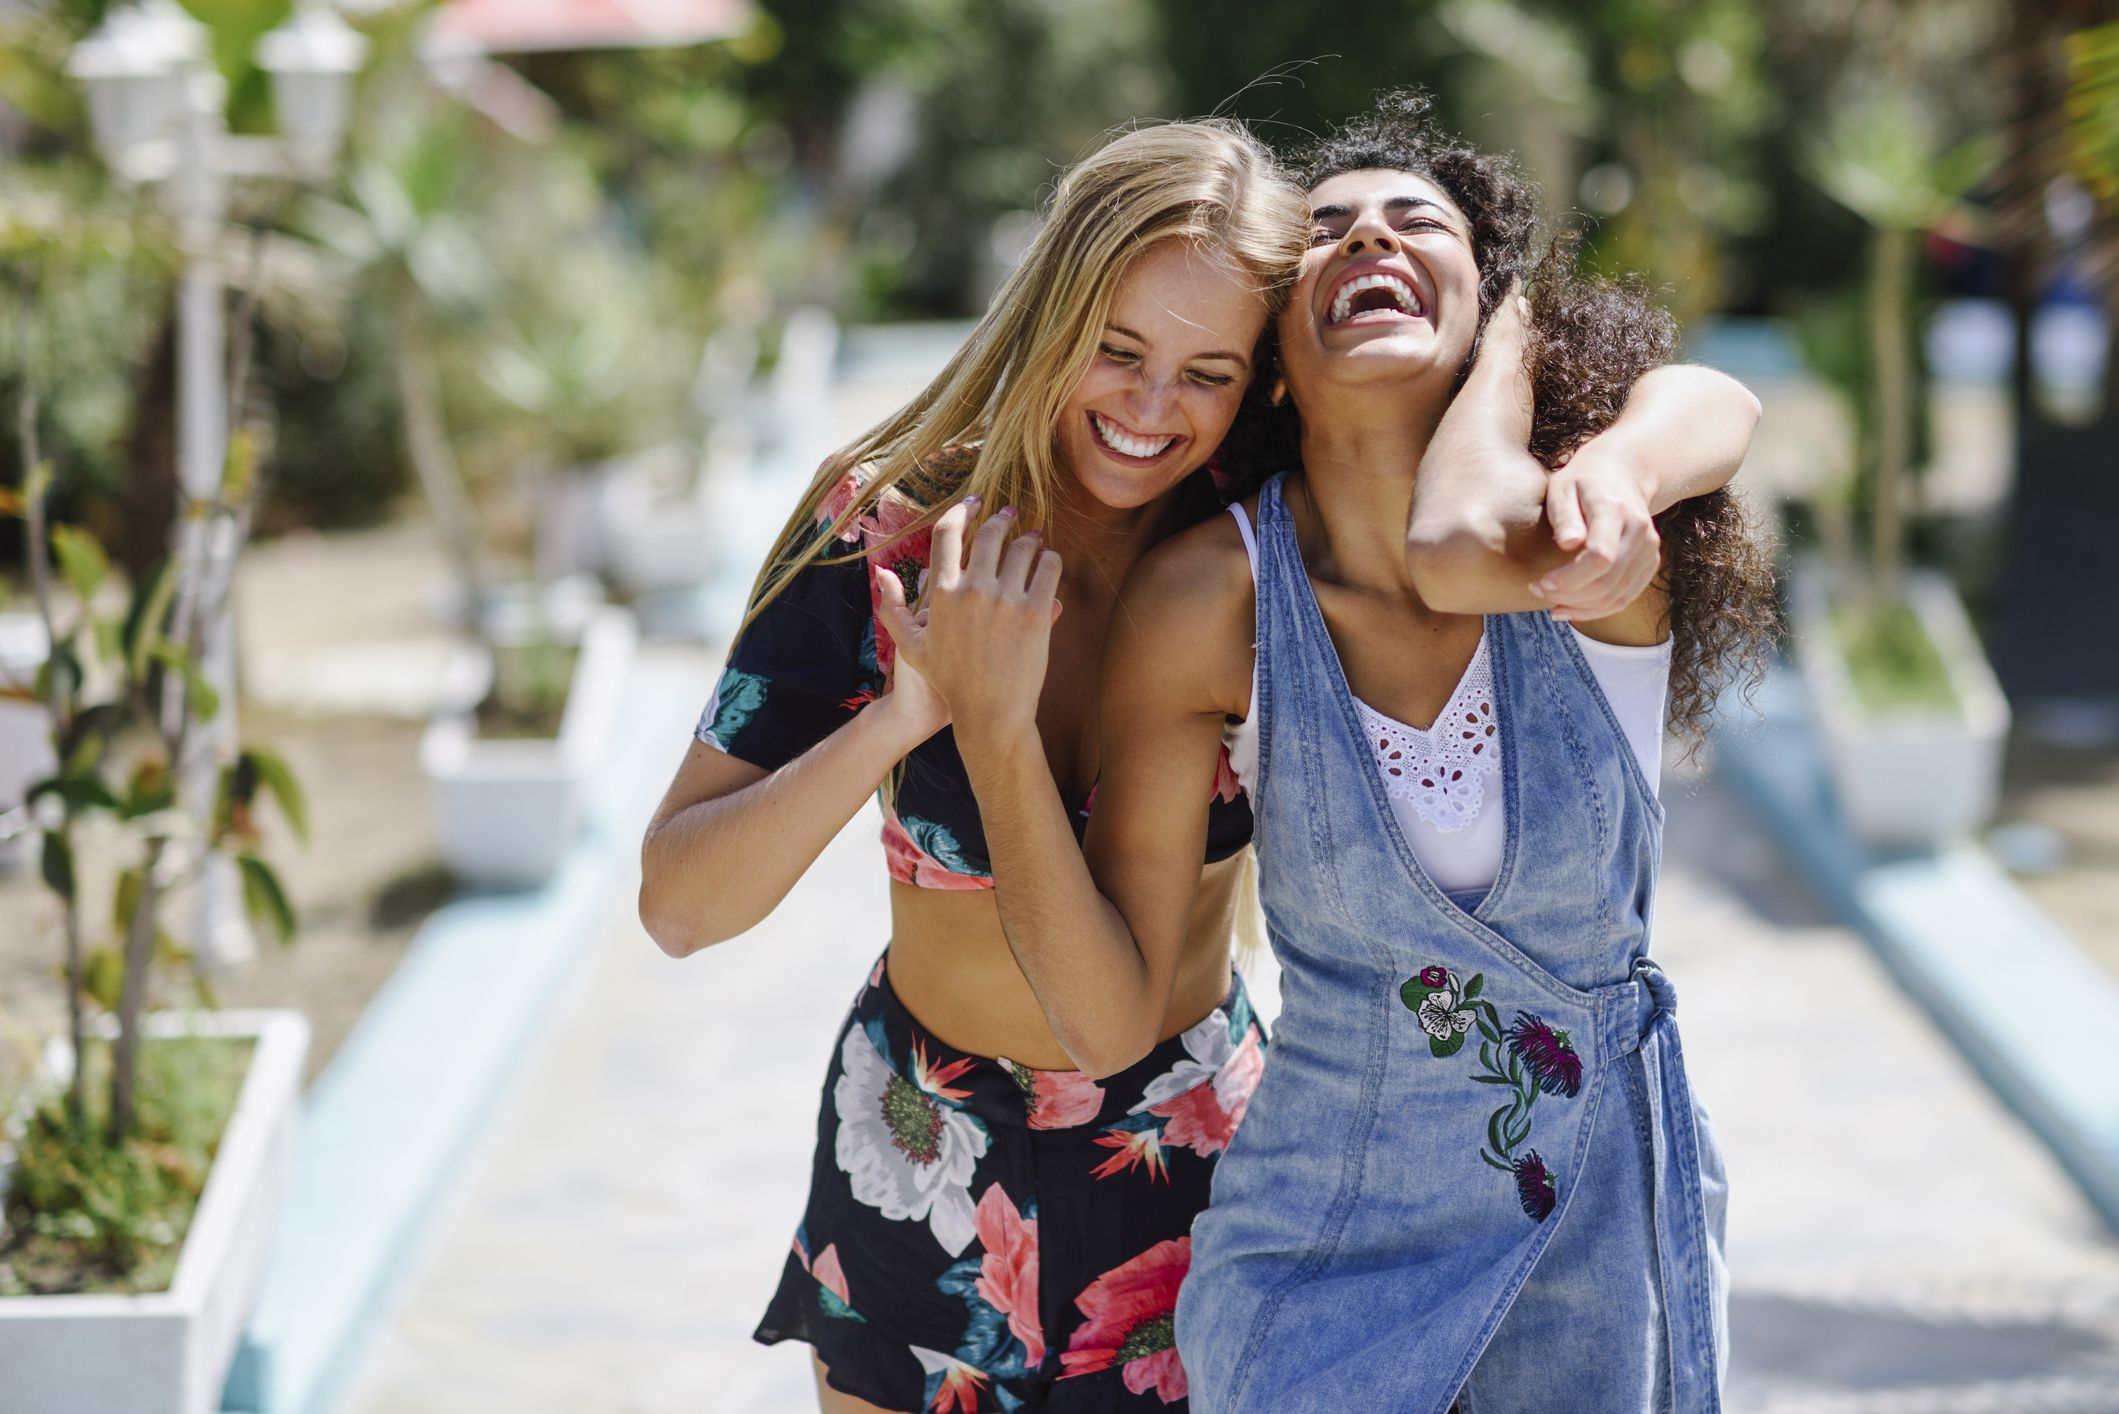 50 Funny Questions To Ask Your Friends To Strengthen Your Bond